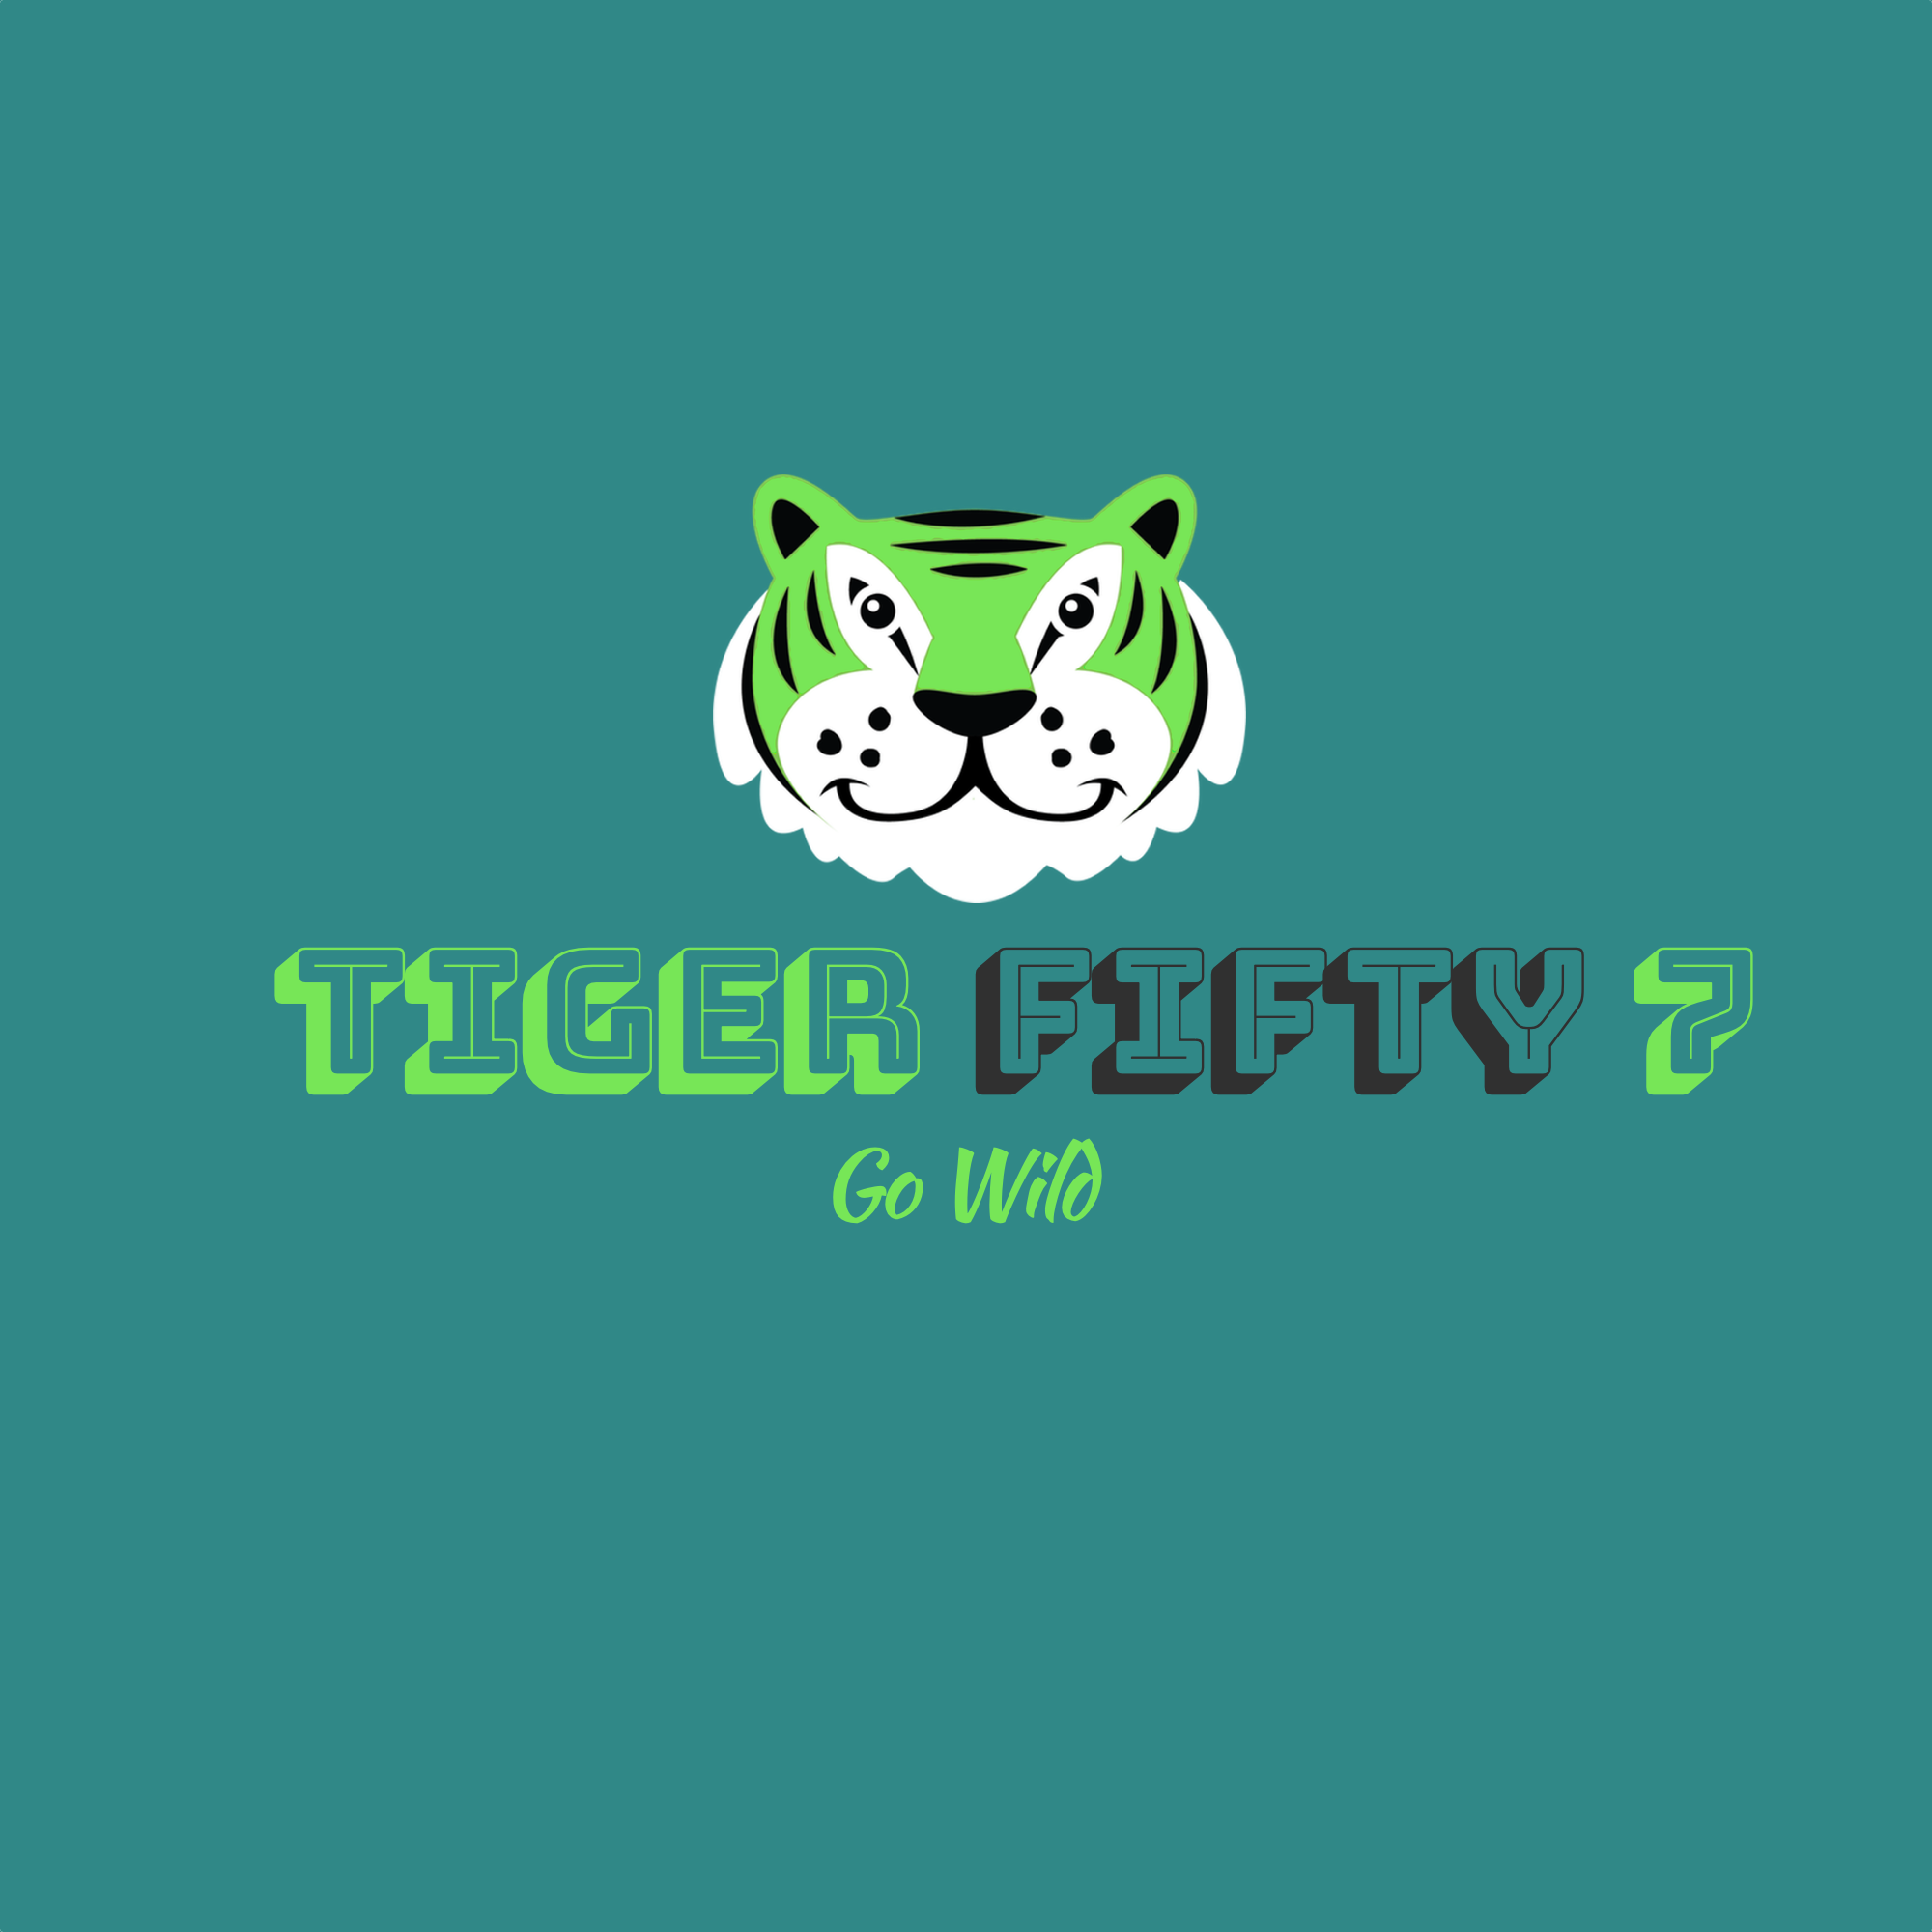 tigerfifty7 on Twitter: